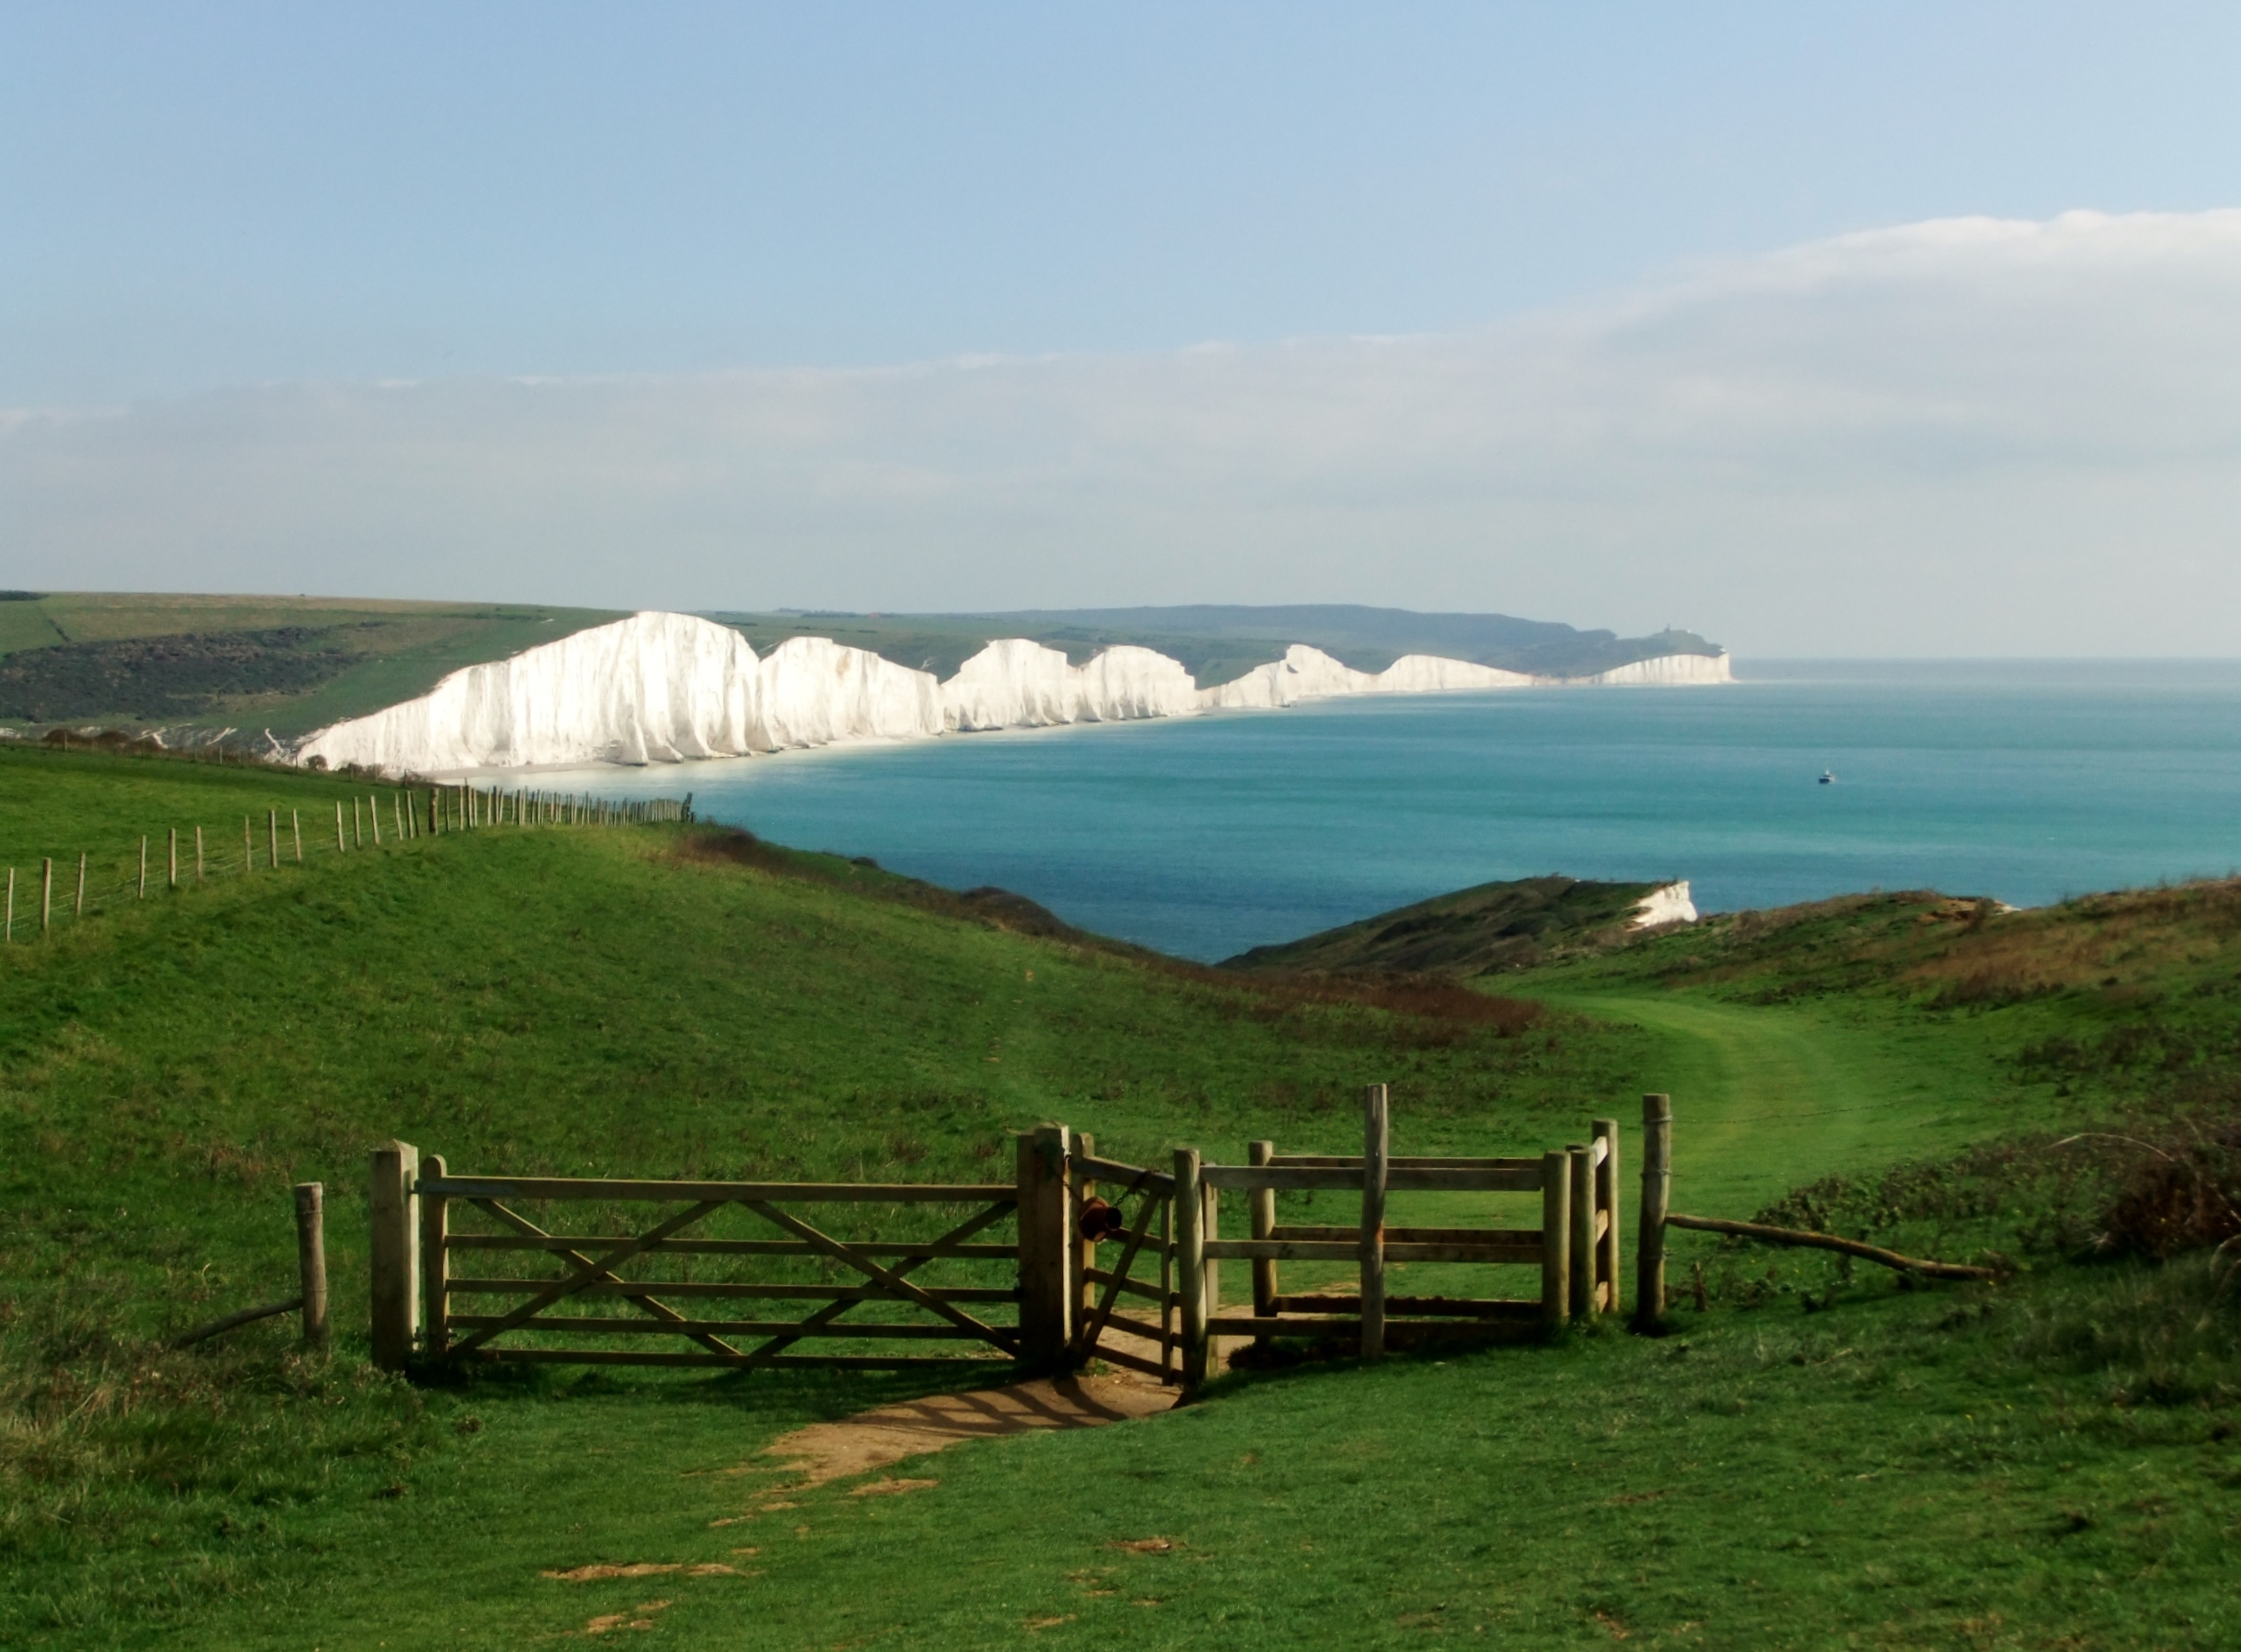 Seven Sisters, East Sussex, Seaford